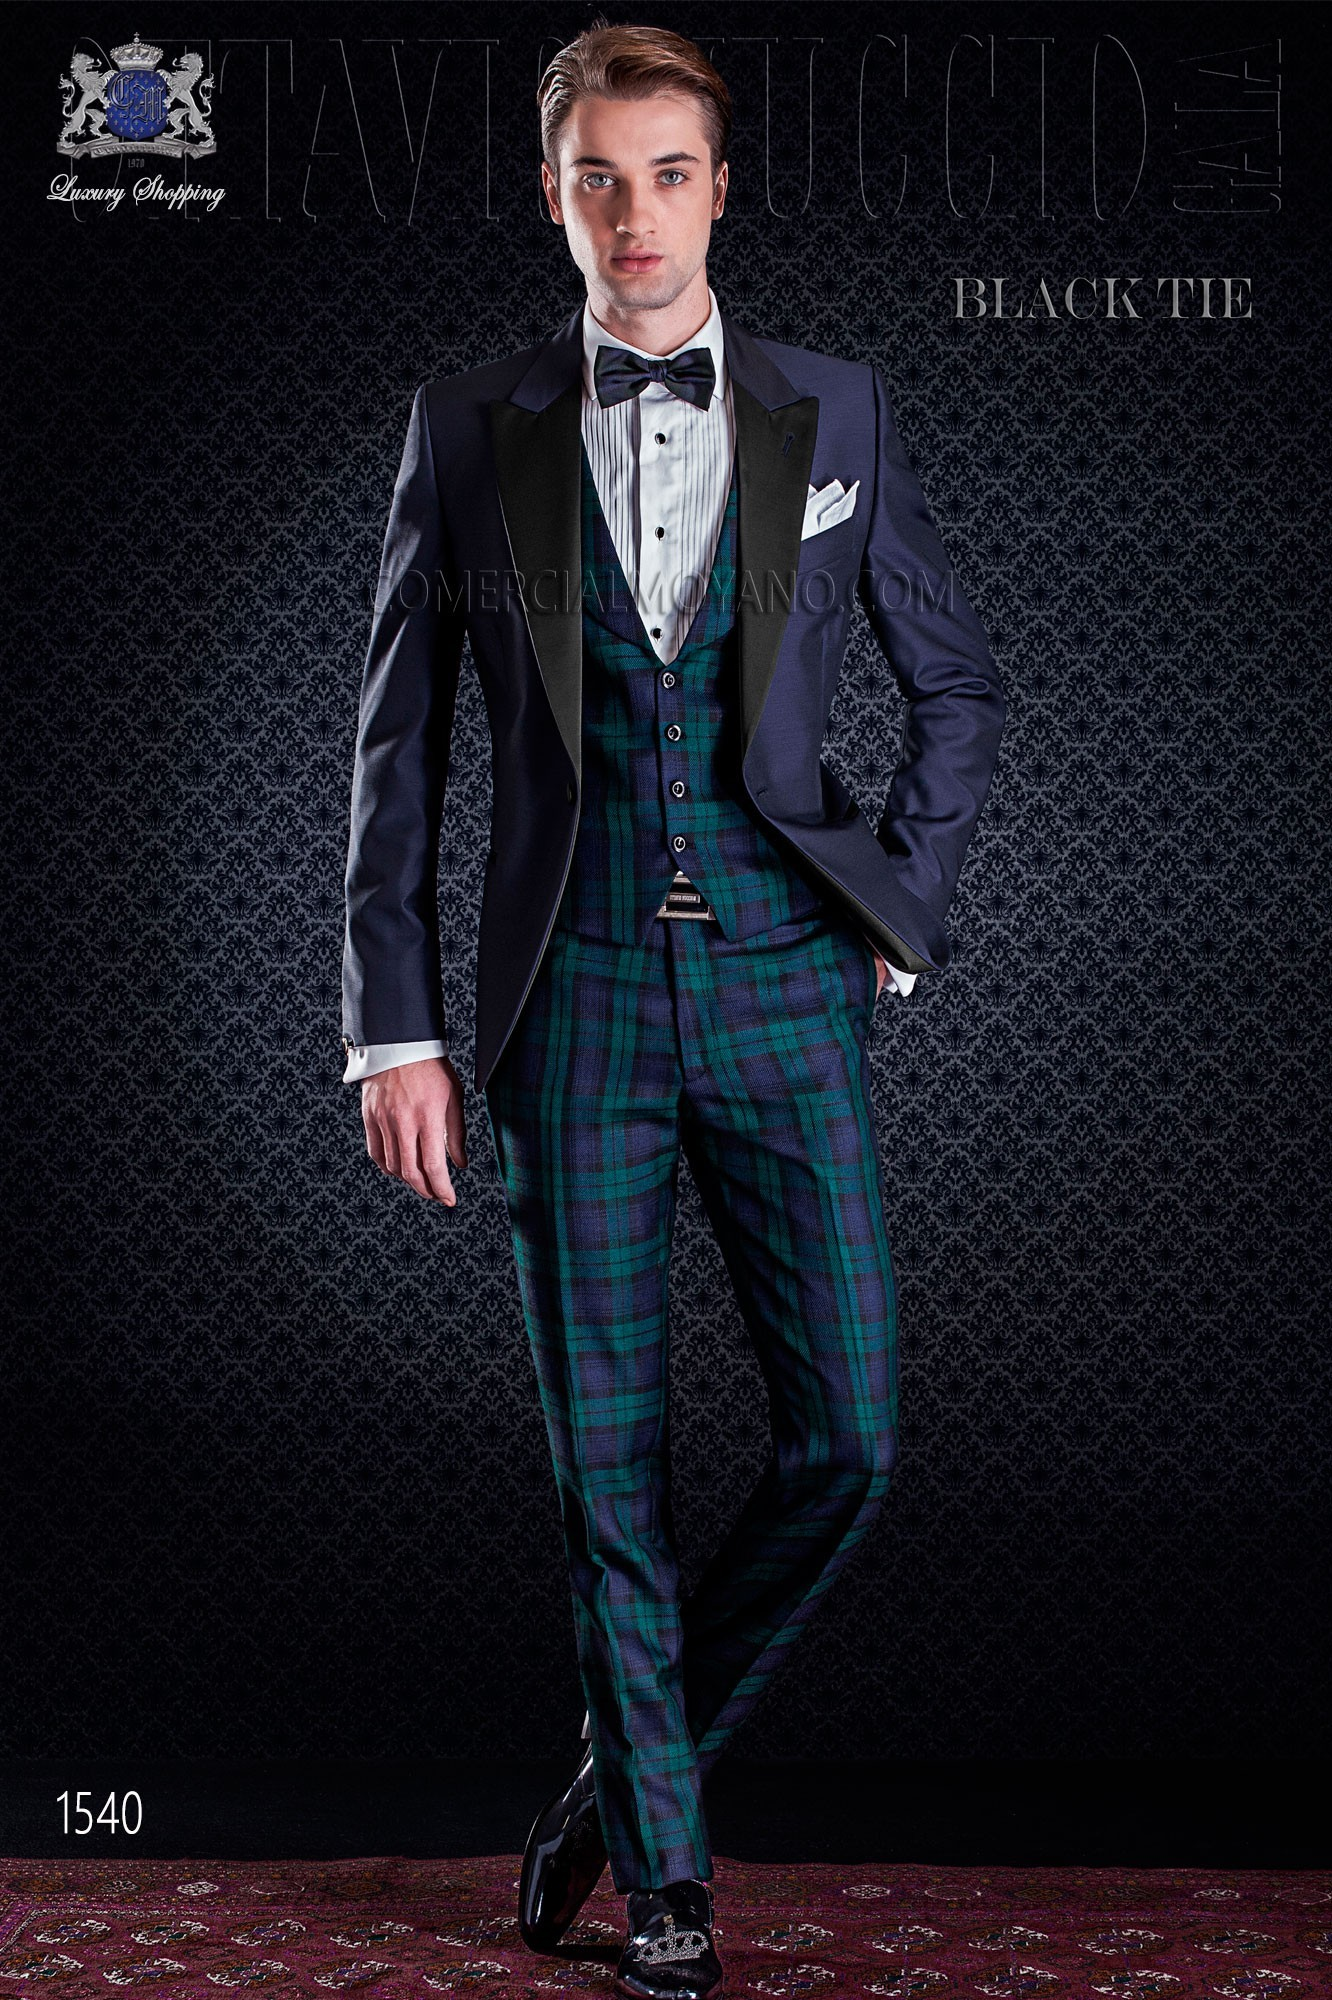 Italian bespoke dark blue tuxedo combined with a tartan trousers